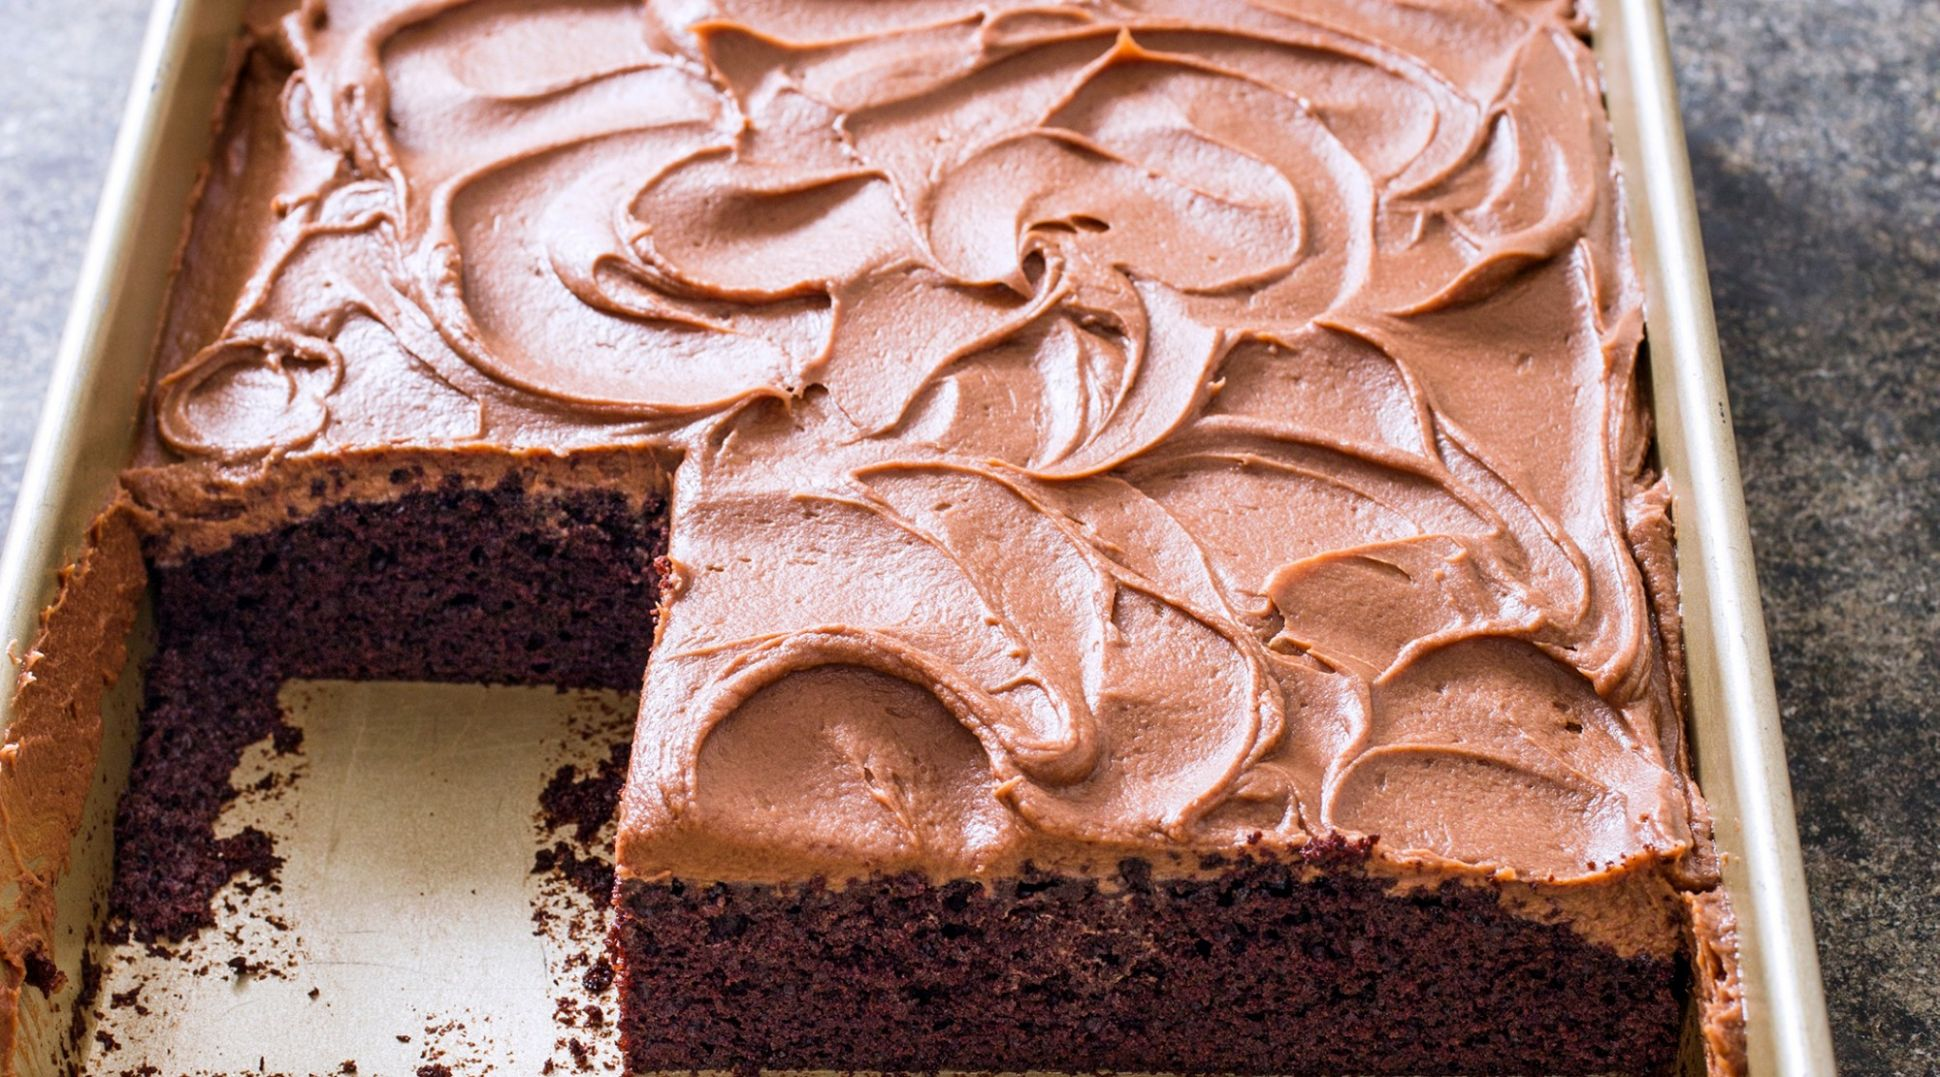 Chocolate Sheet Cake with Milk Chocolate Frosting - Recipes Chocolate Sheet Cake